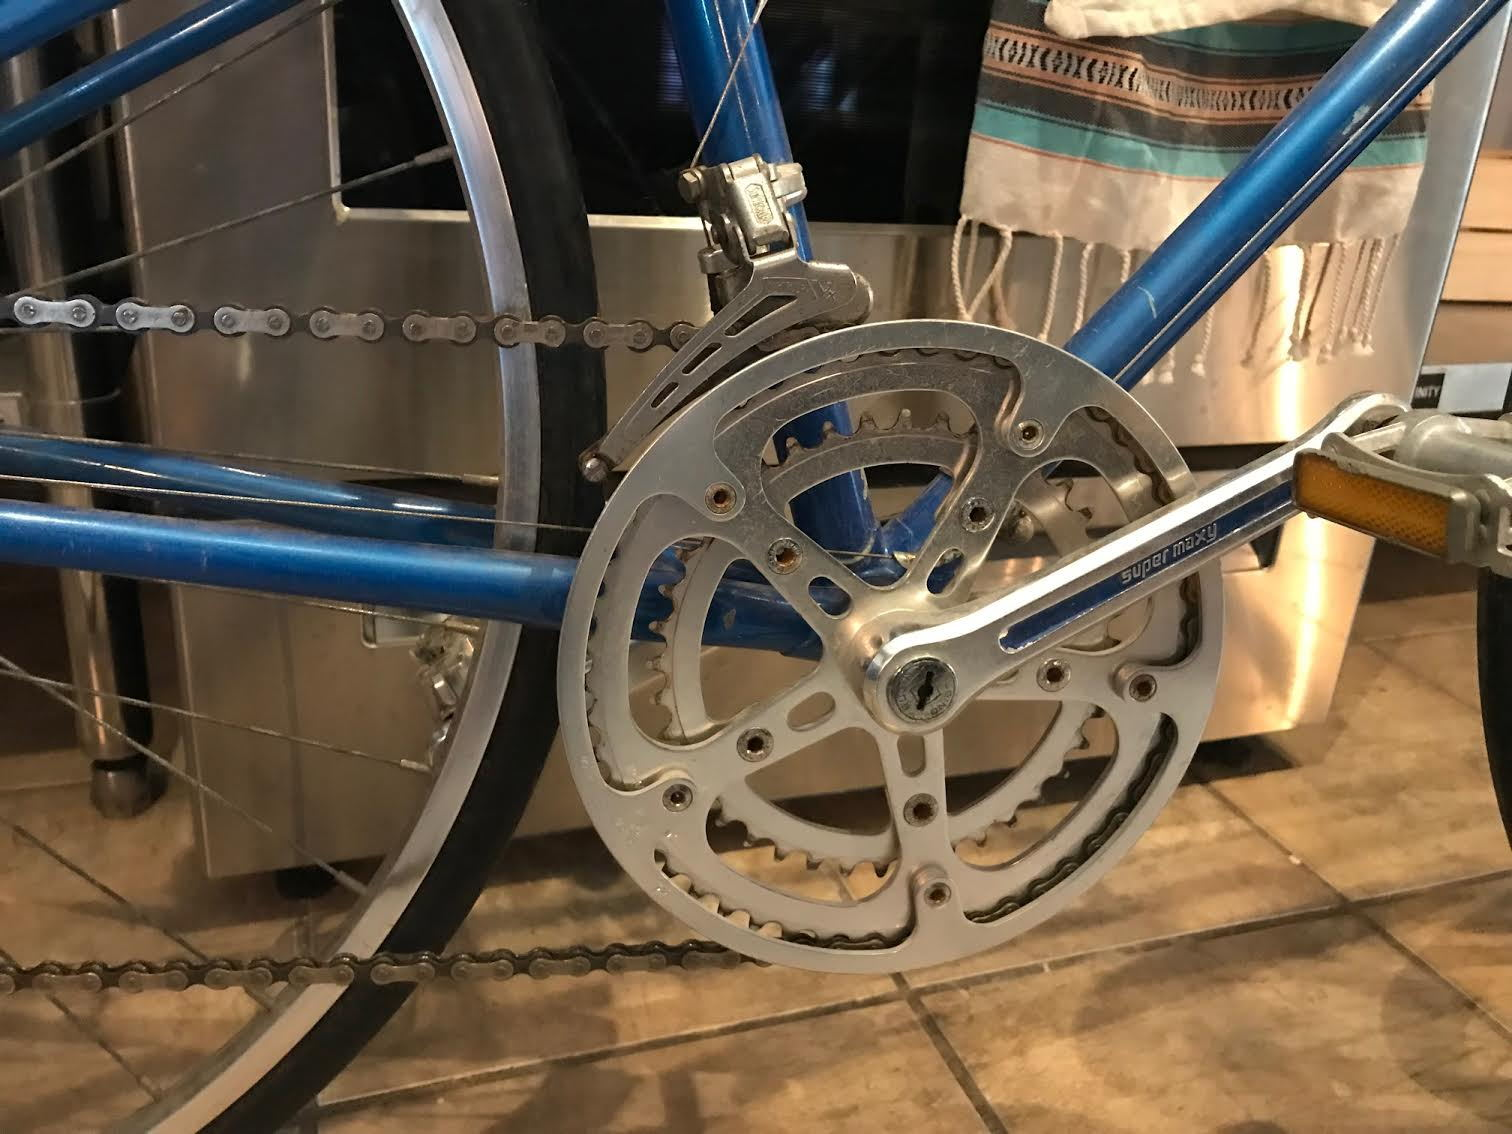 Can't find any info on this Nishiki    - Bike Forums